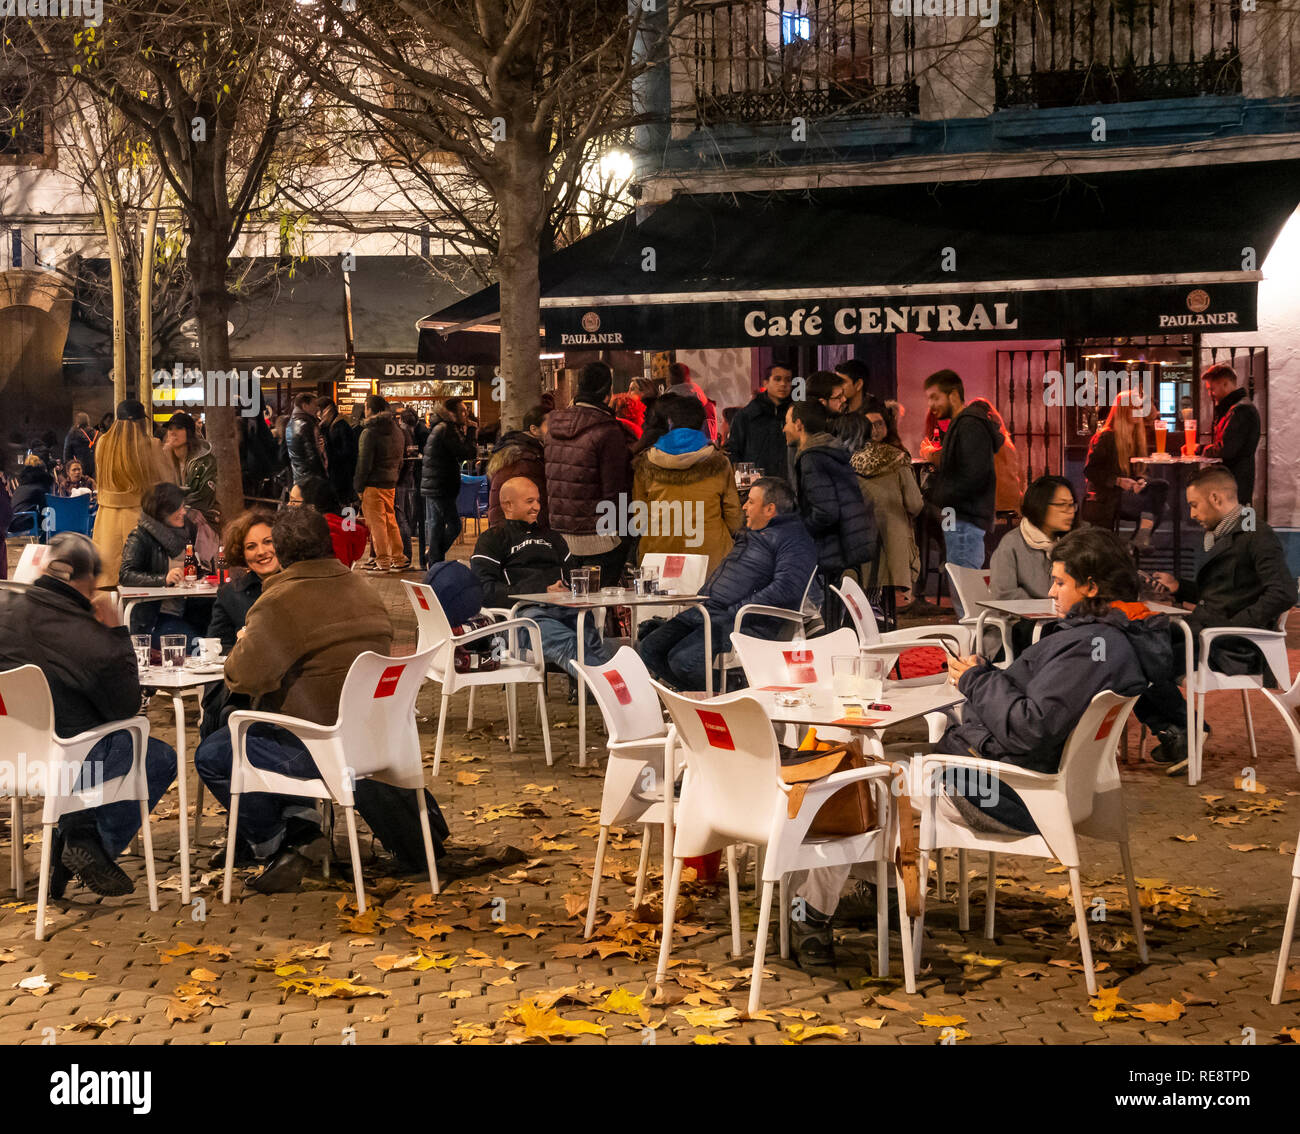 People at outside tables on a chilly winter night at a cafe in the Alameda de Hercules in Seville, Spain - Stock Image